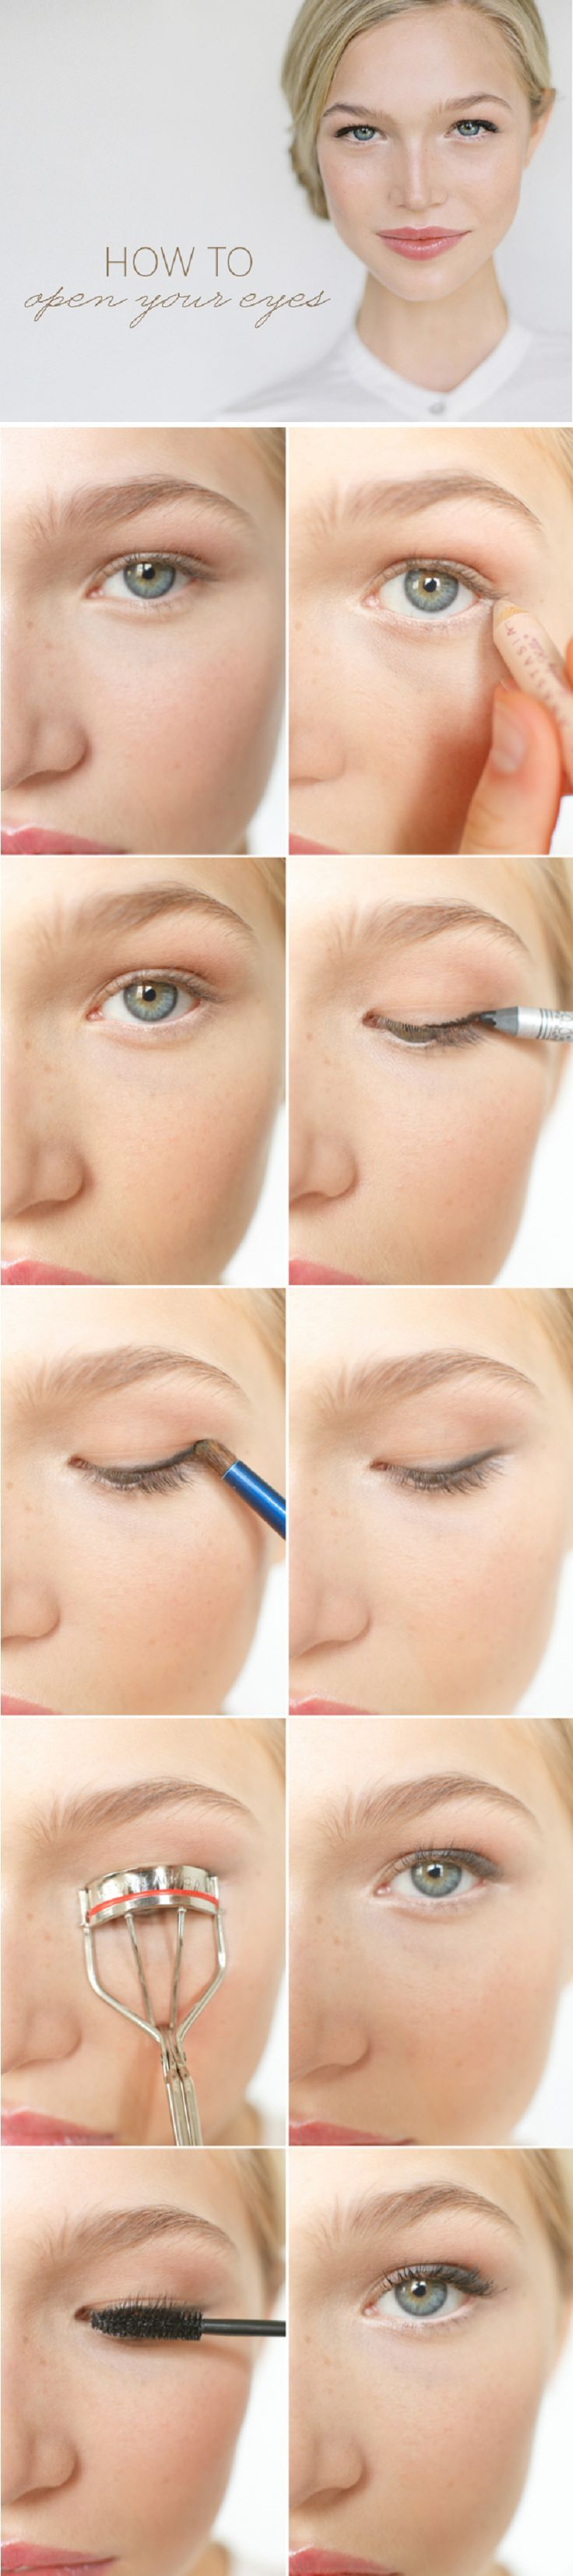 How to open your eyes with 3 products or less big eyes makeup 106 1000 ideas about bigger eyes makeup on pinterest baditri Images